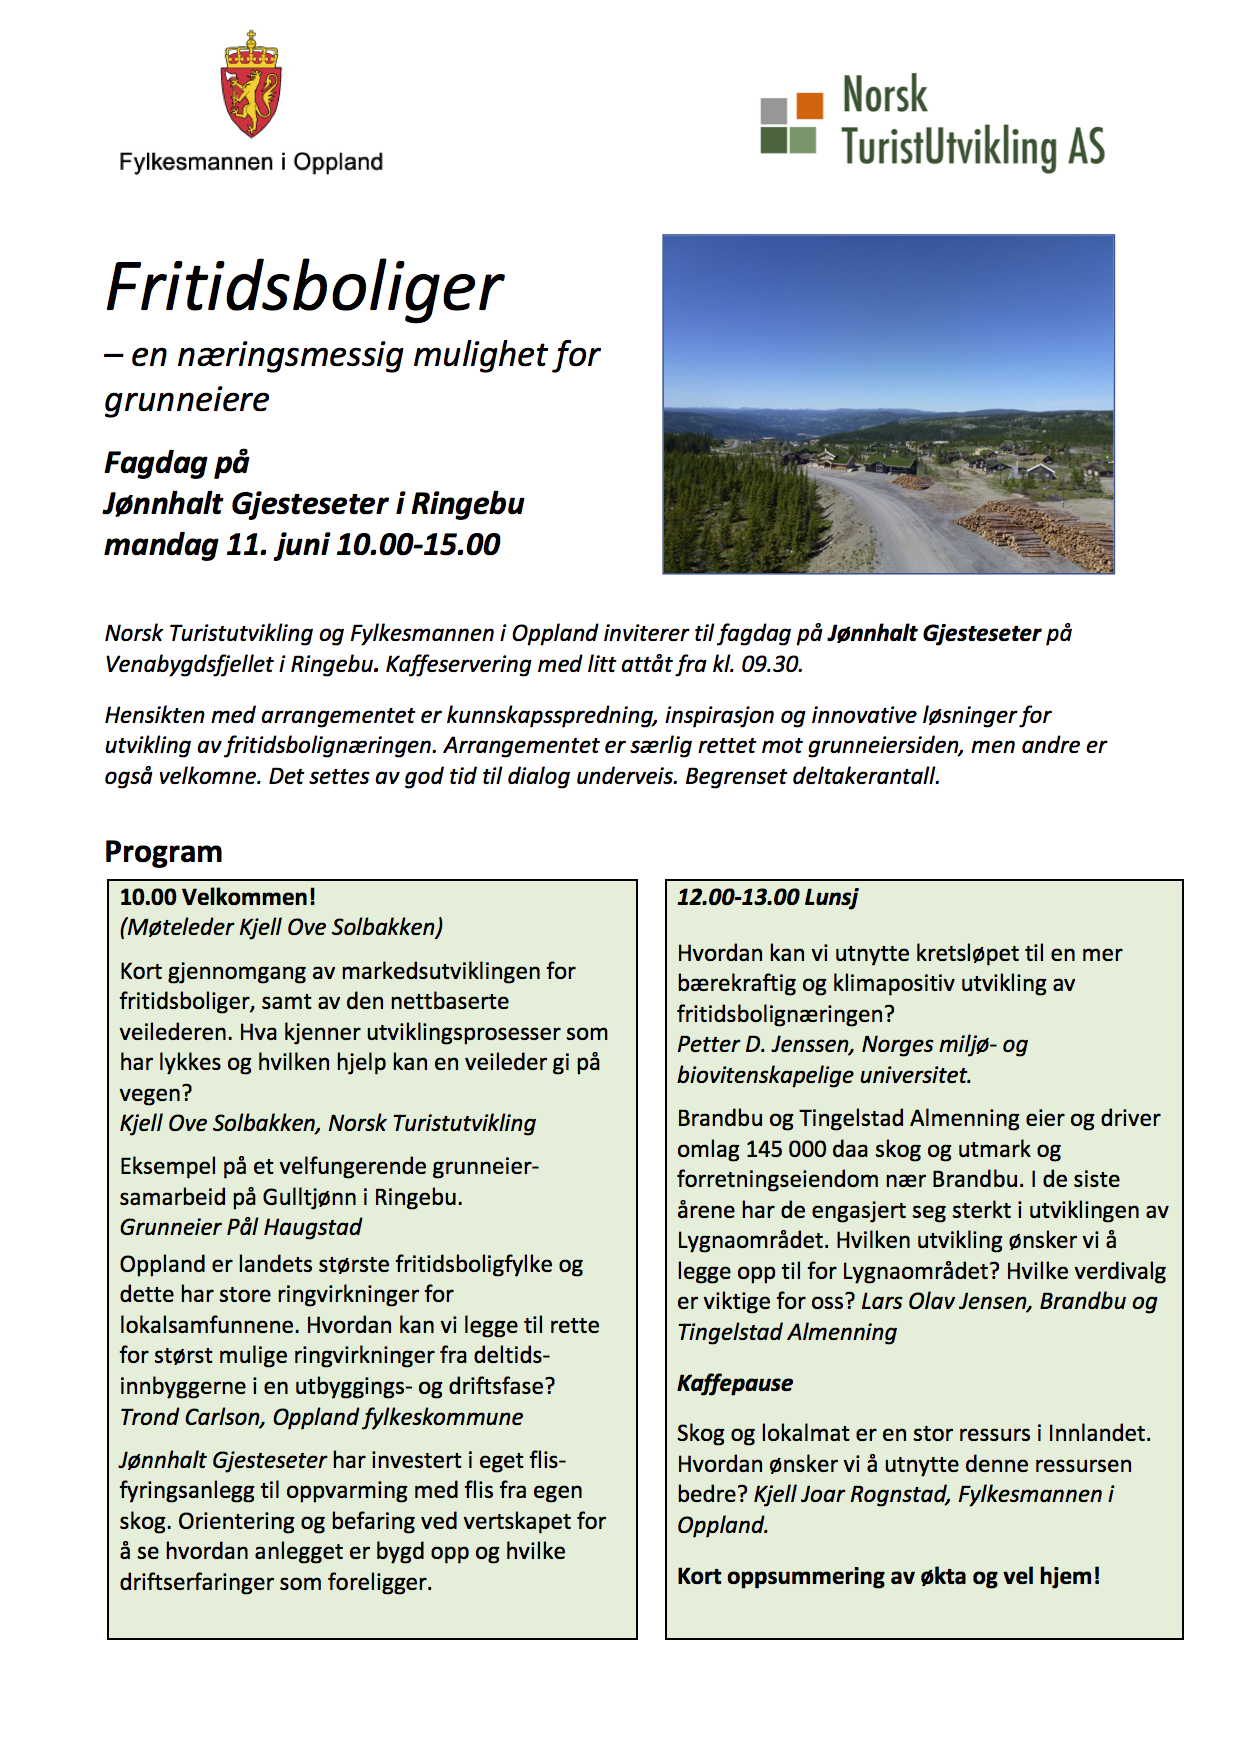 Program fagdag 11. juni 2018